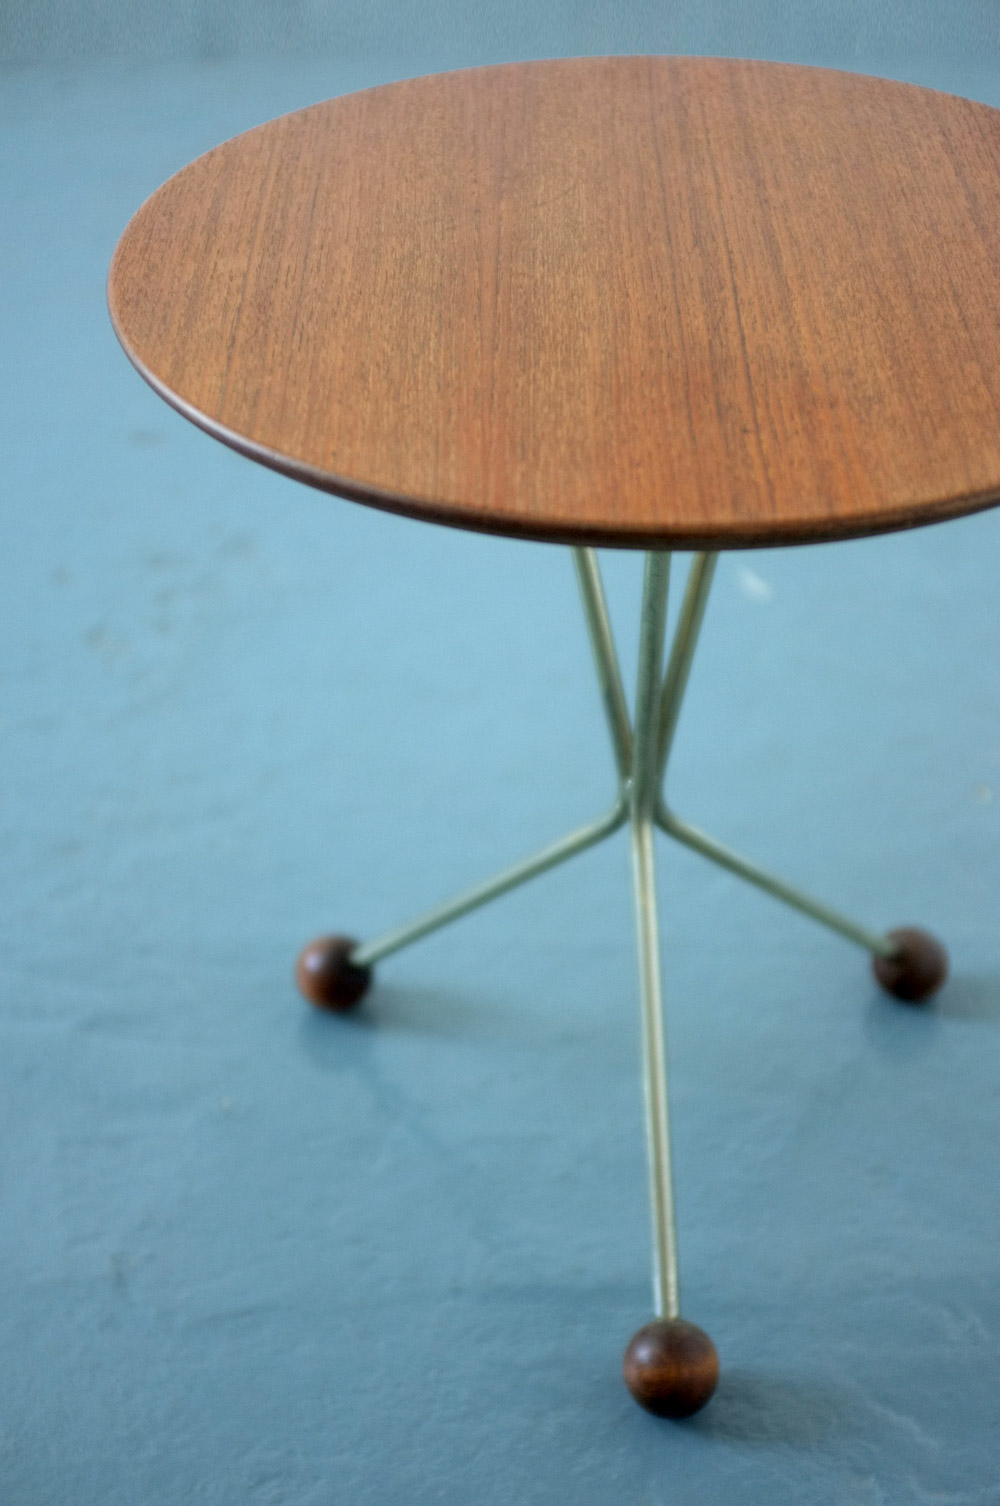 Albert Larsson 1950s tripod table